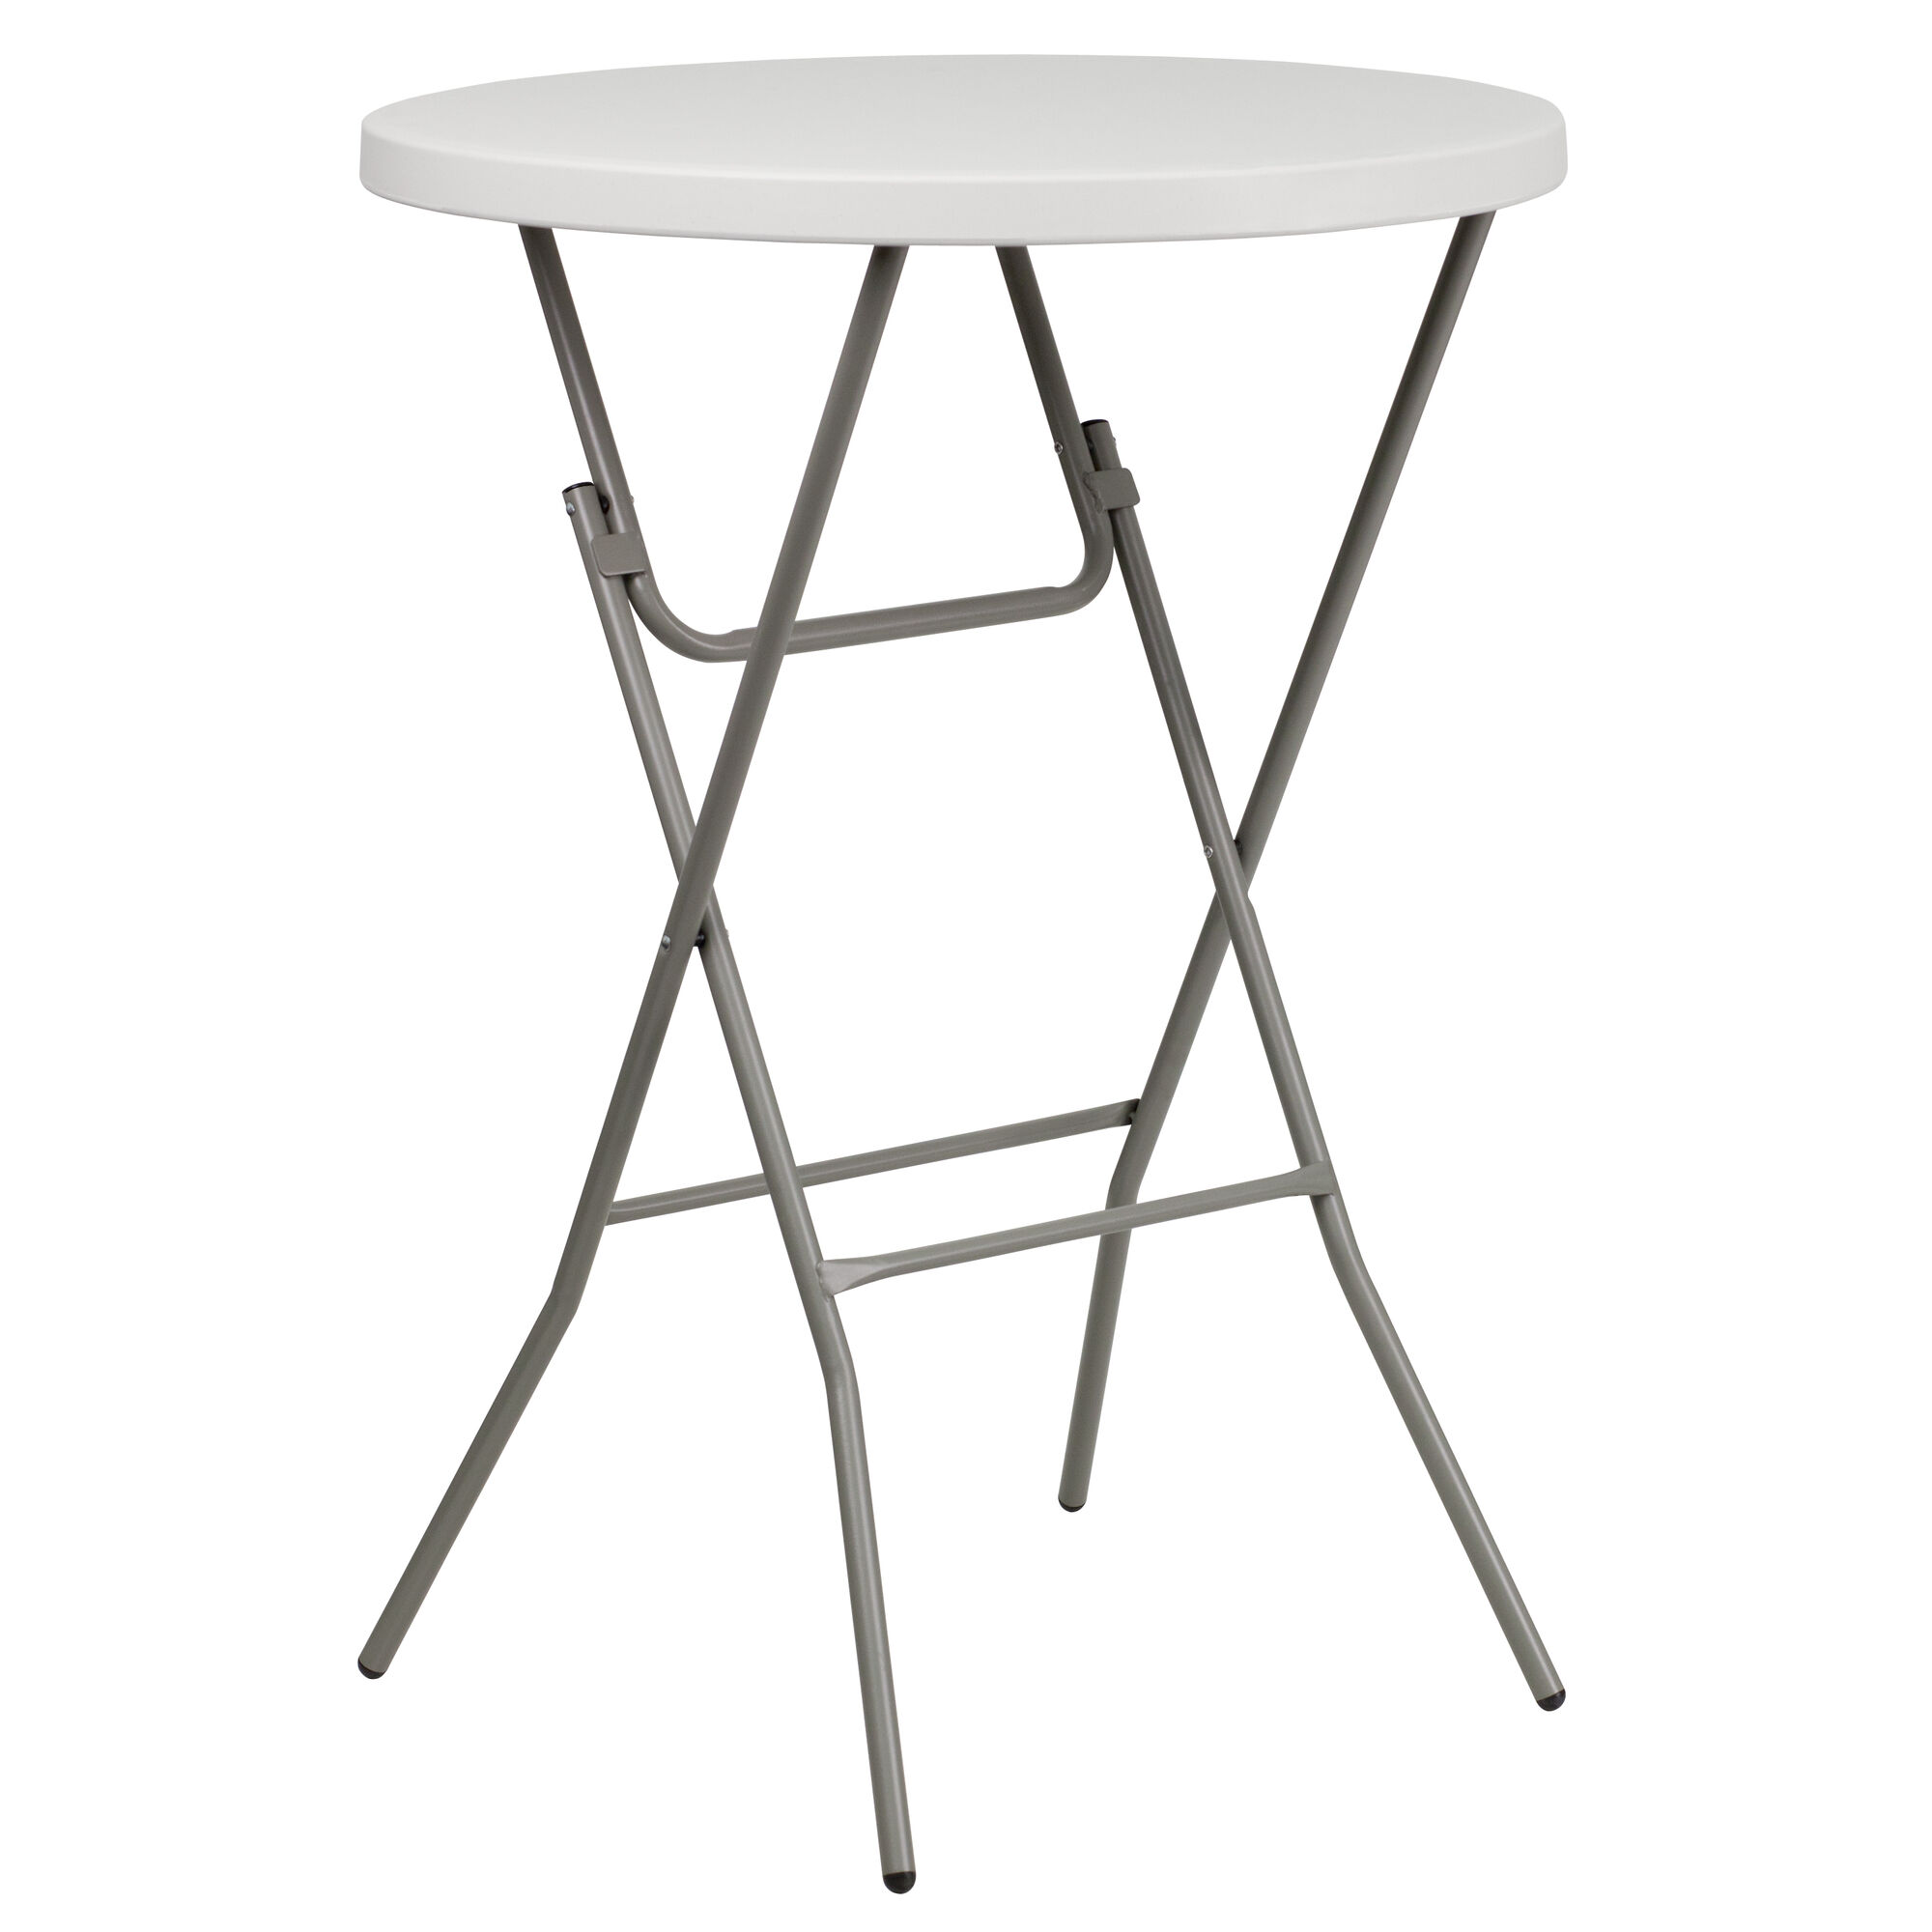 Magnificent 3 Foot Round Granite White Plastic Bar Height Folding Table Pabps2019 Chair Design Images Pabps2019Com